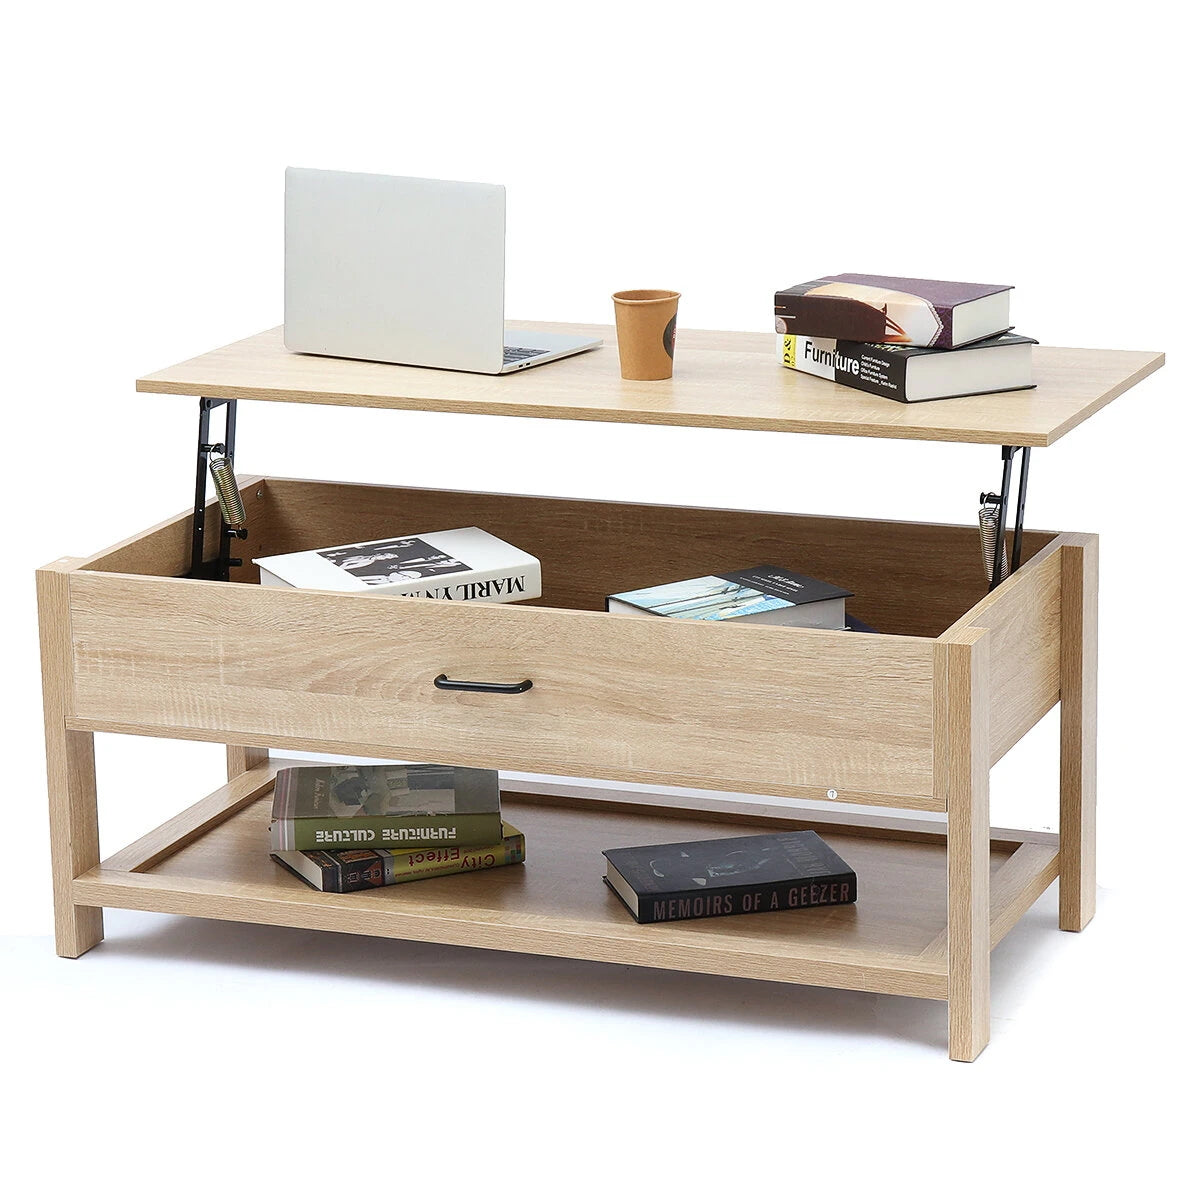 OfficeMateZ™ Lift Top Coffee Table Modern Lift Up Coffee Table Solid Wood